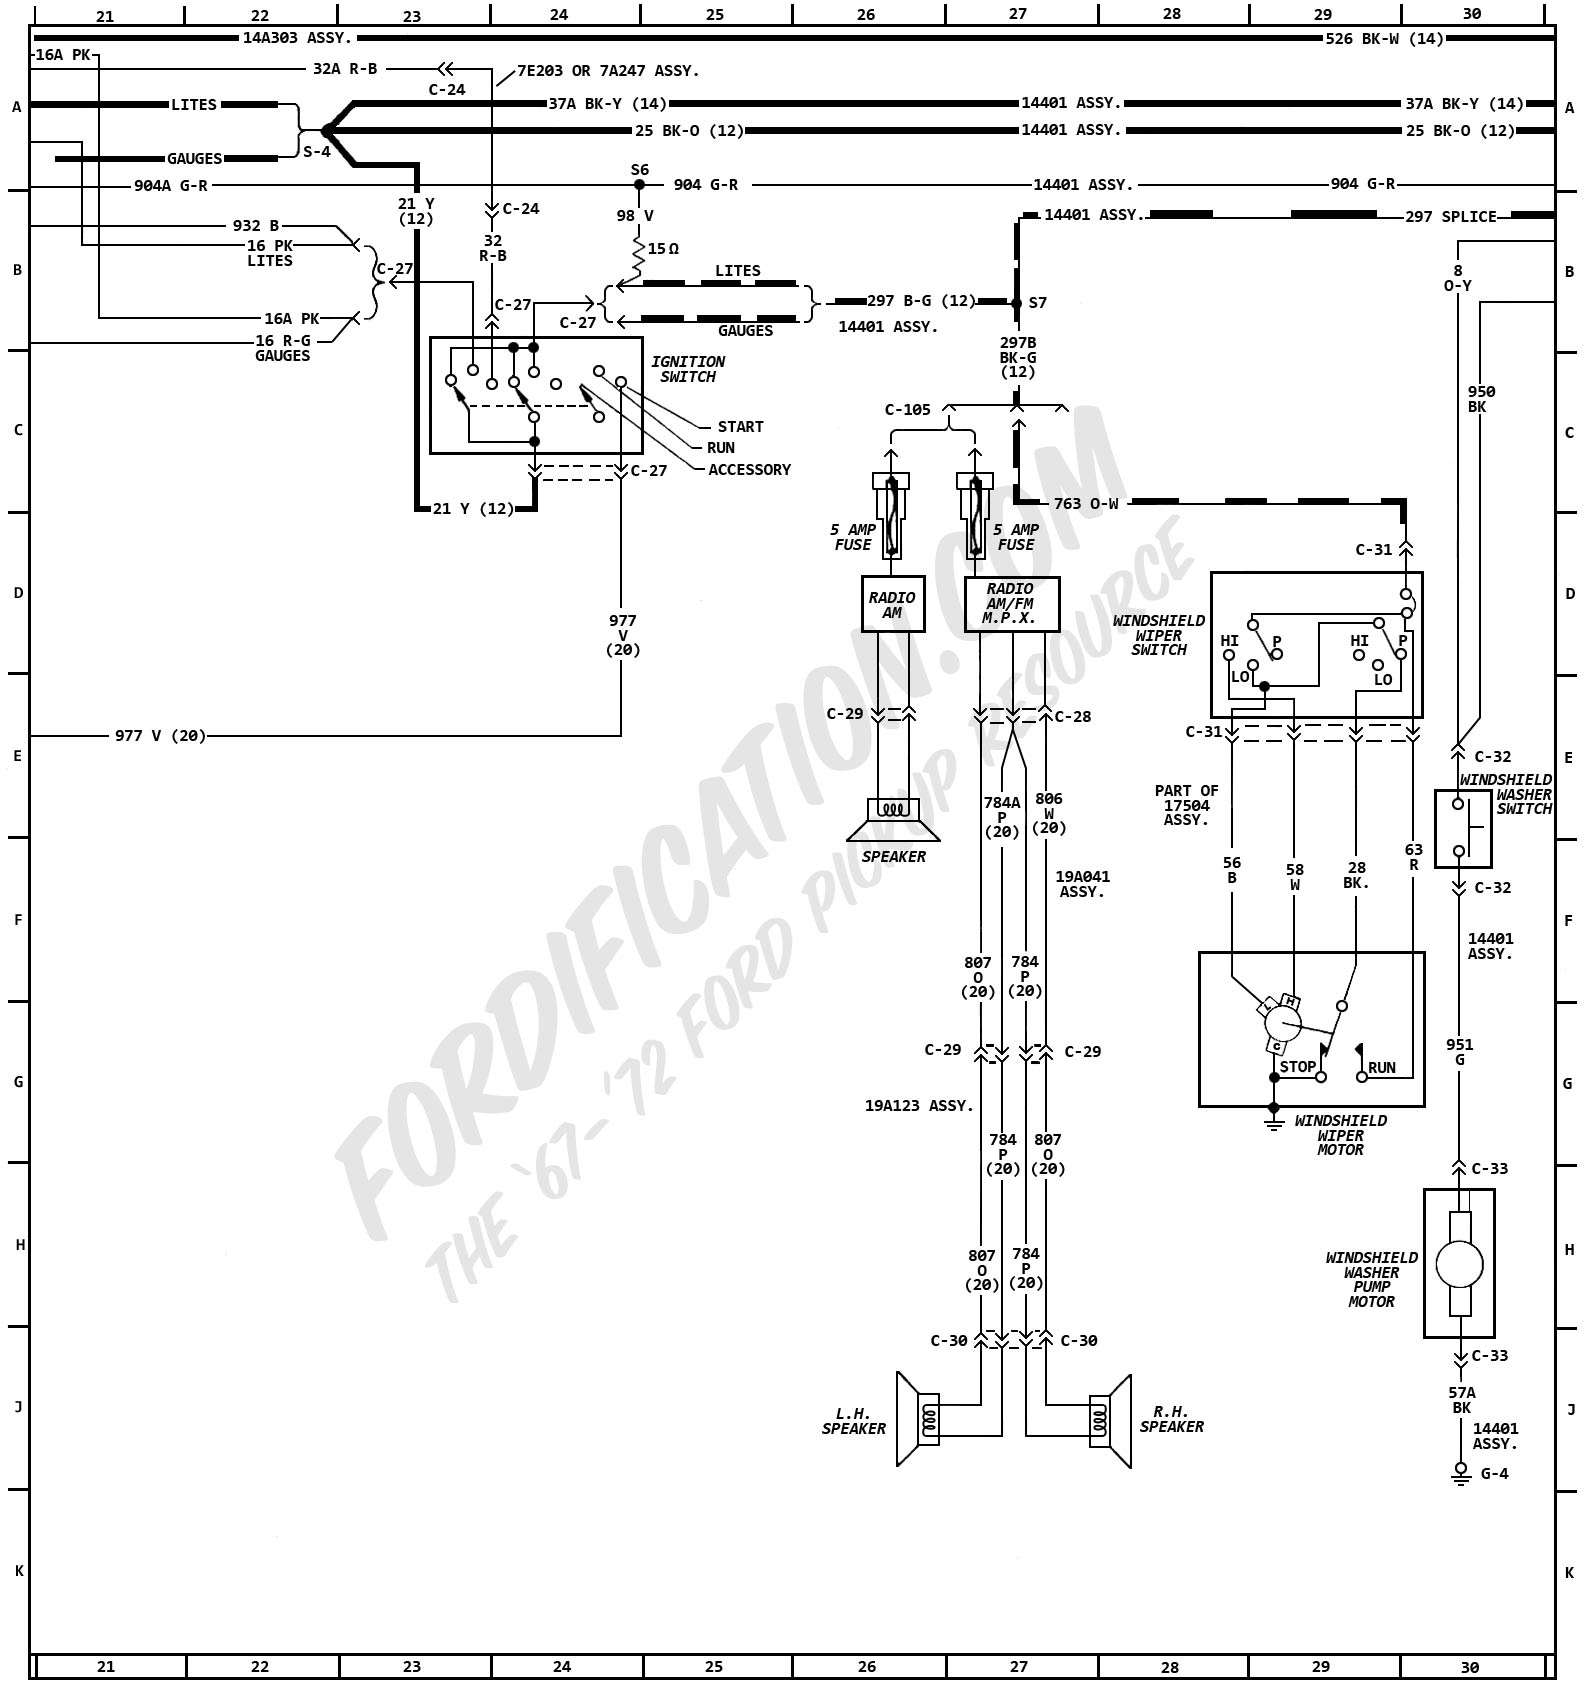 1990 F150 Wiper Switch Wiring Diagram Libraries Mcneilus Atlantic 2007 Ford L9000 Explained1990 Third Level